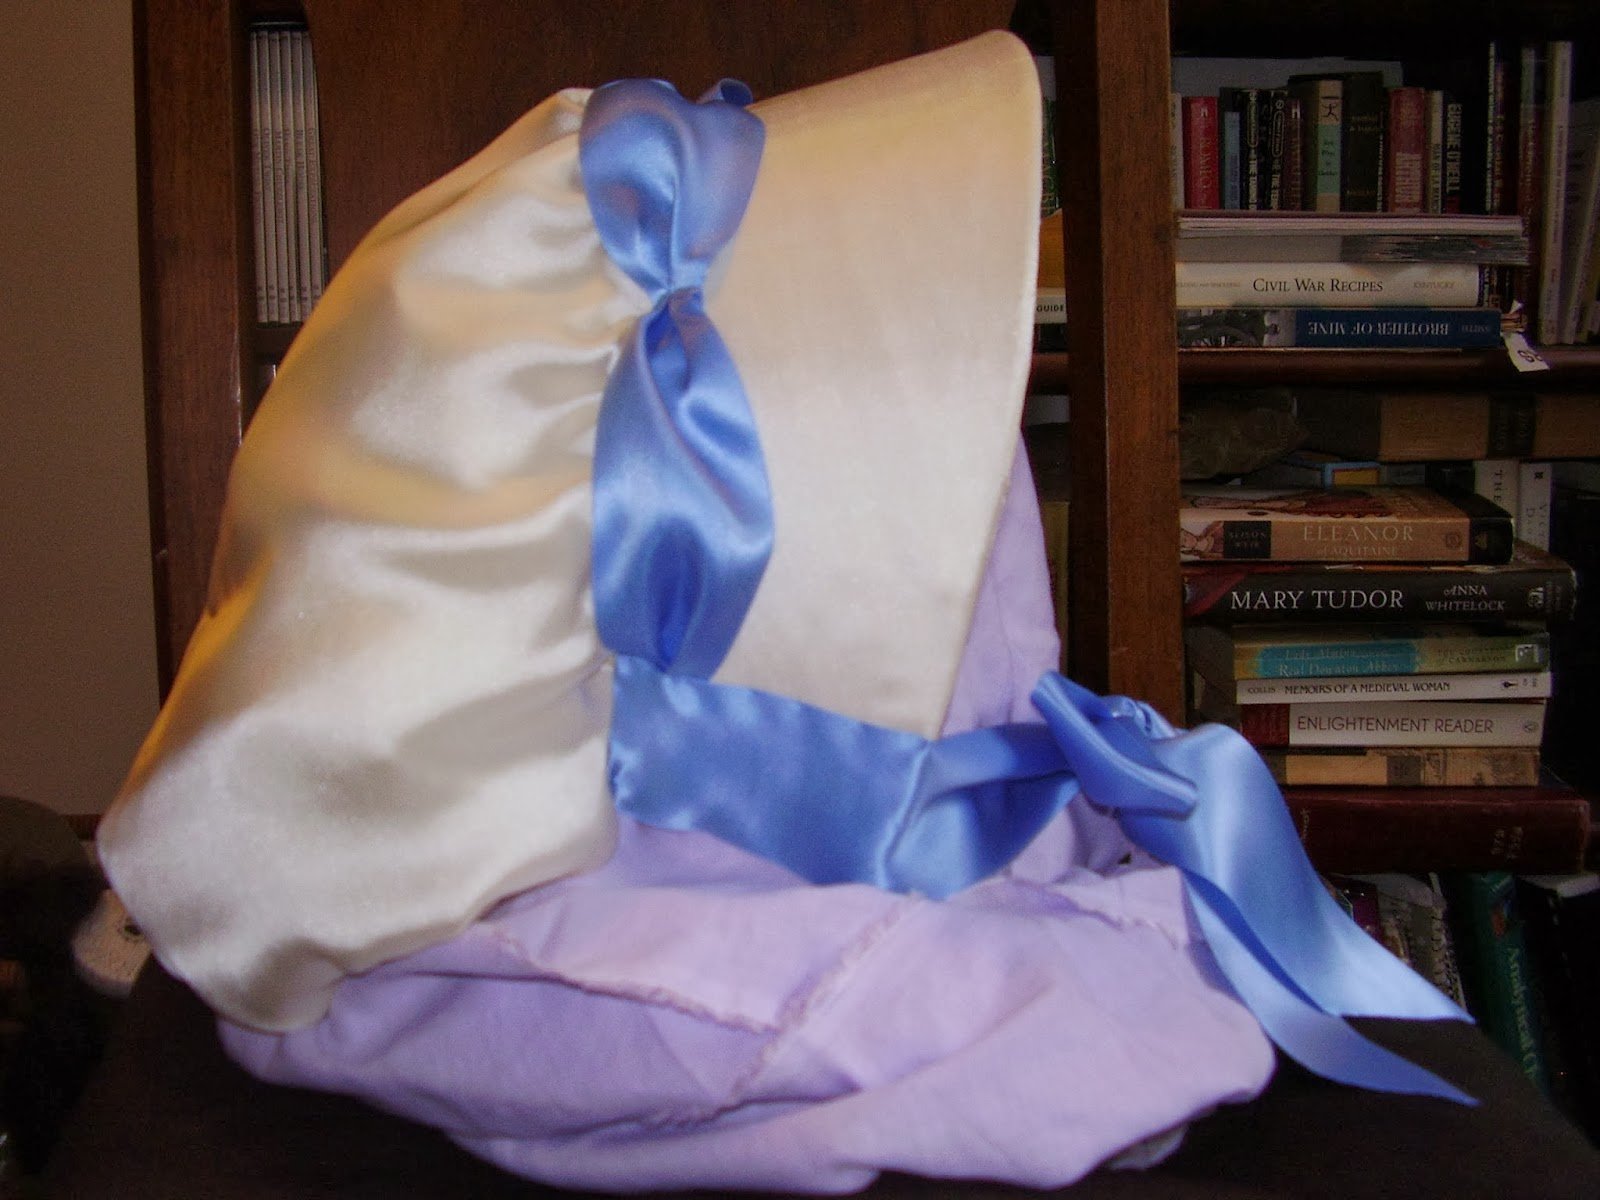 White satin bonnet with blue ribbon trim, made from the Julia pattern by Timely Tresses.